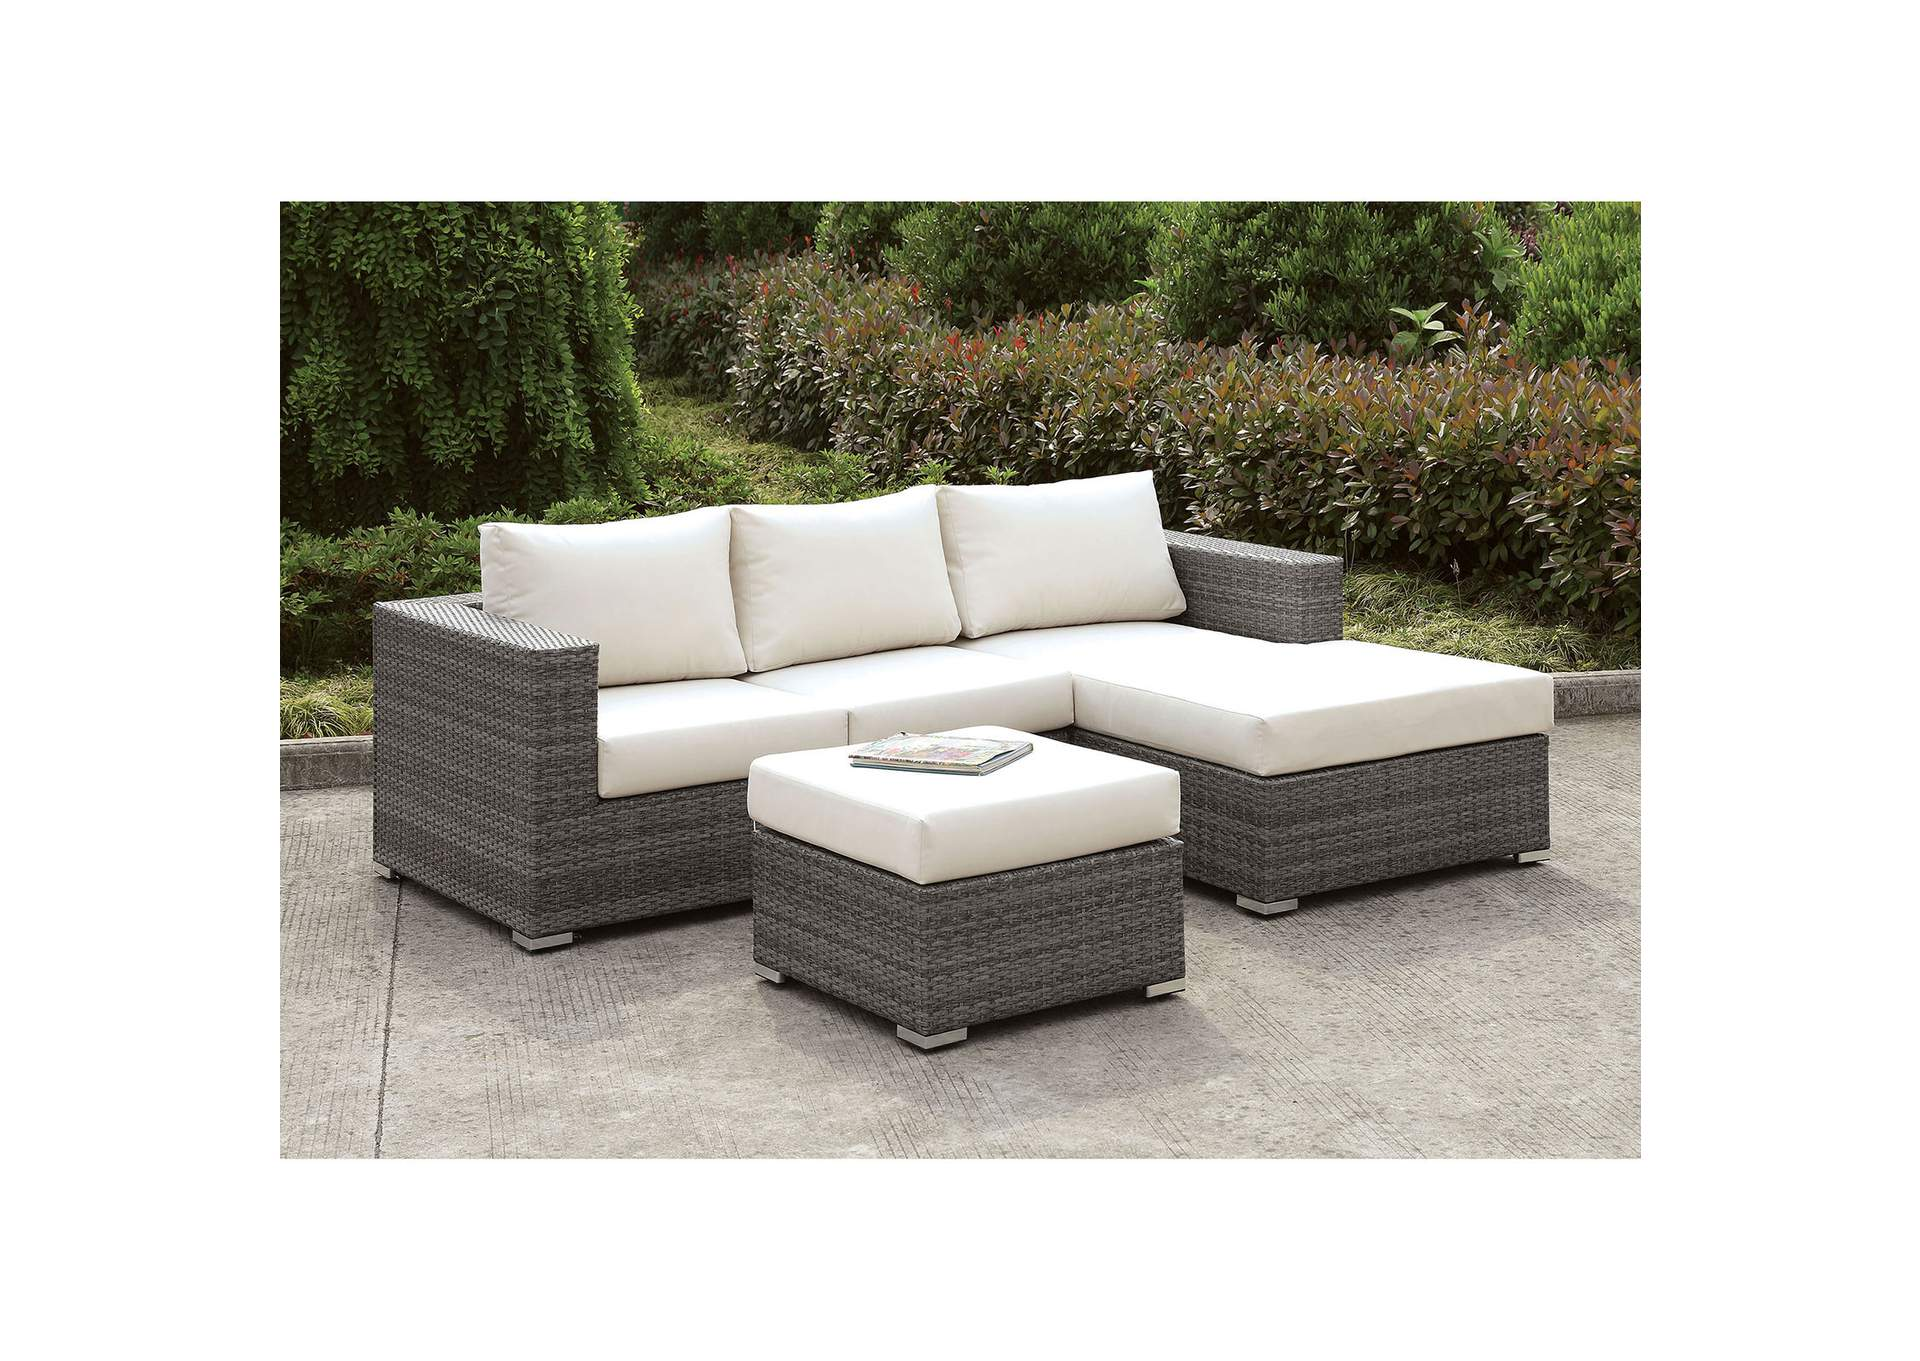 Fabulous Harlem Furniture Somani Light Gray Ivory Wicker Small L Gmtry Best Dining Table And Chair Ideas Images Gmtryco